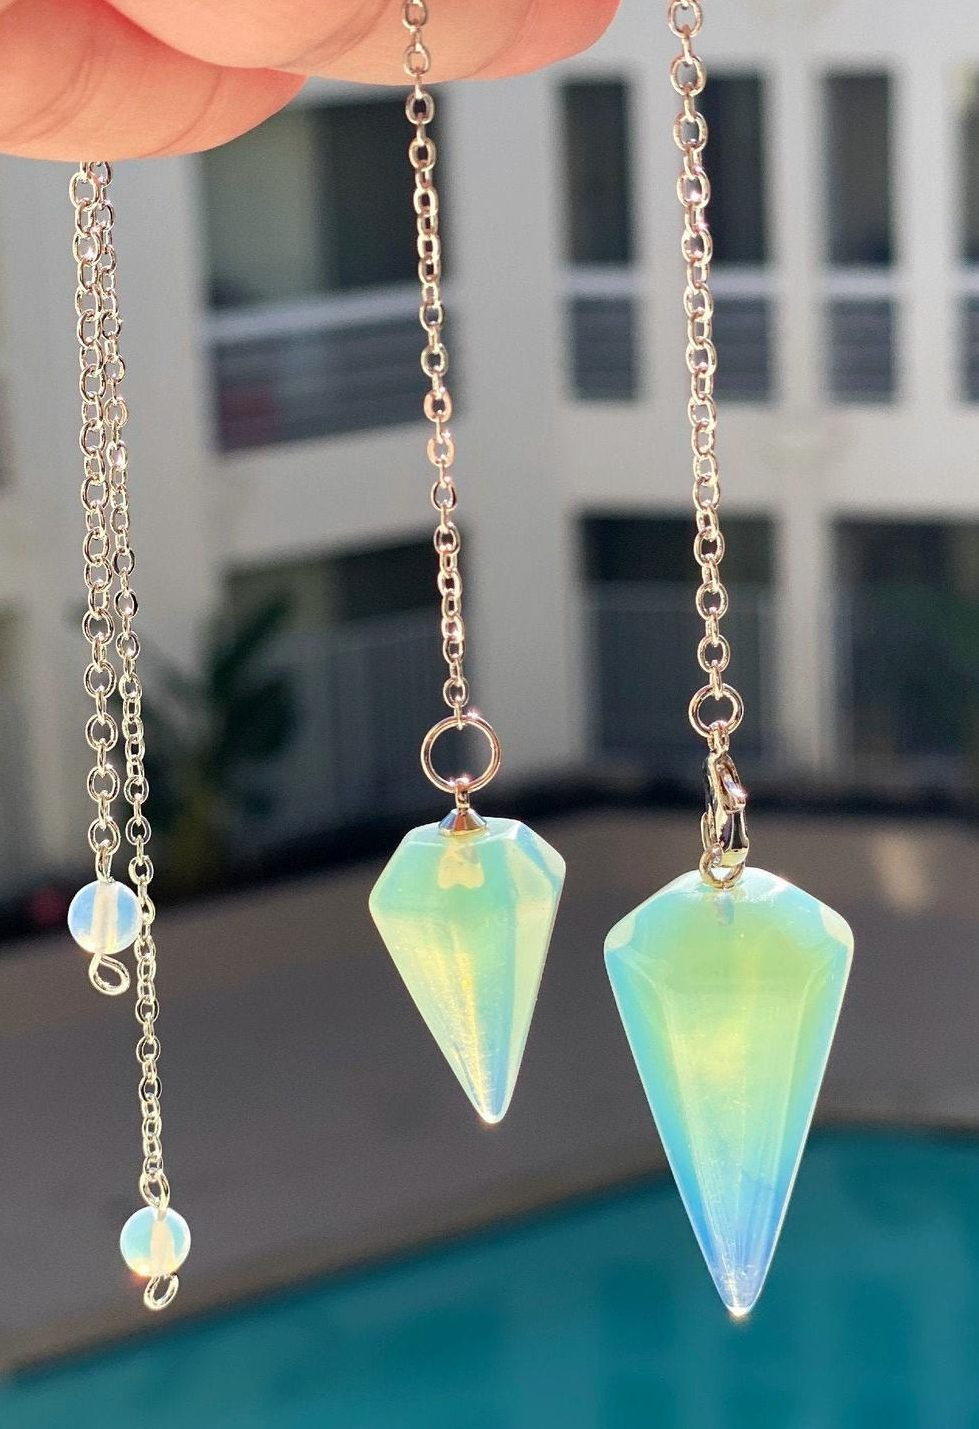 how to cleanse a pendulum